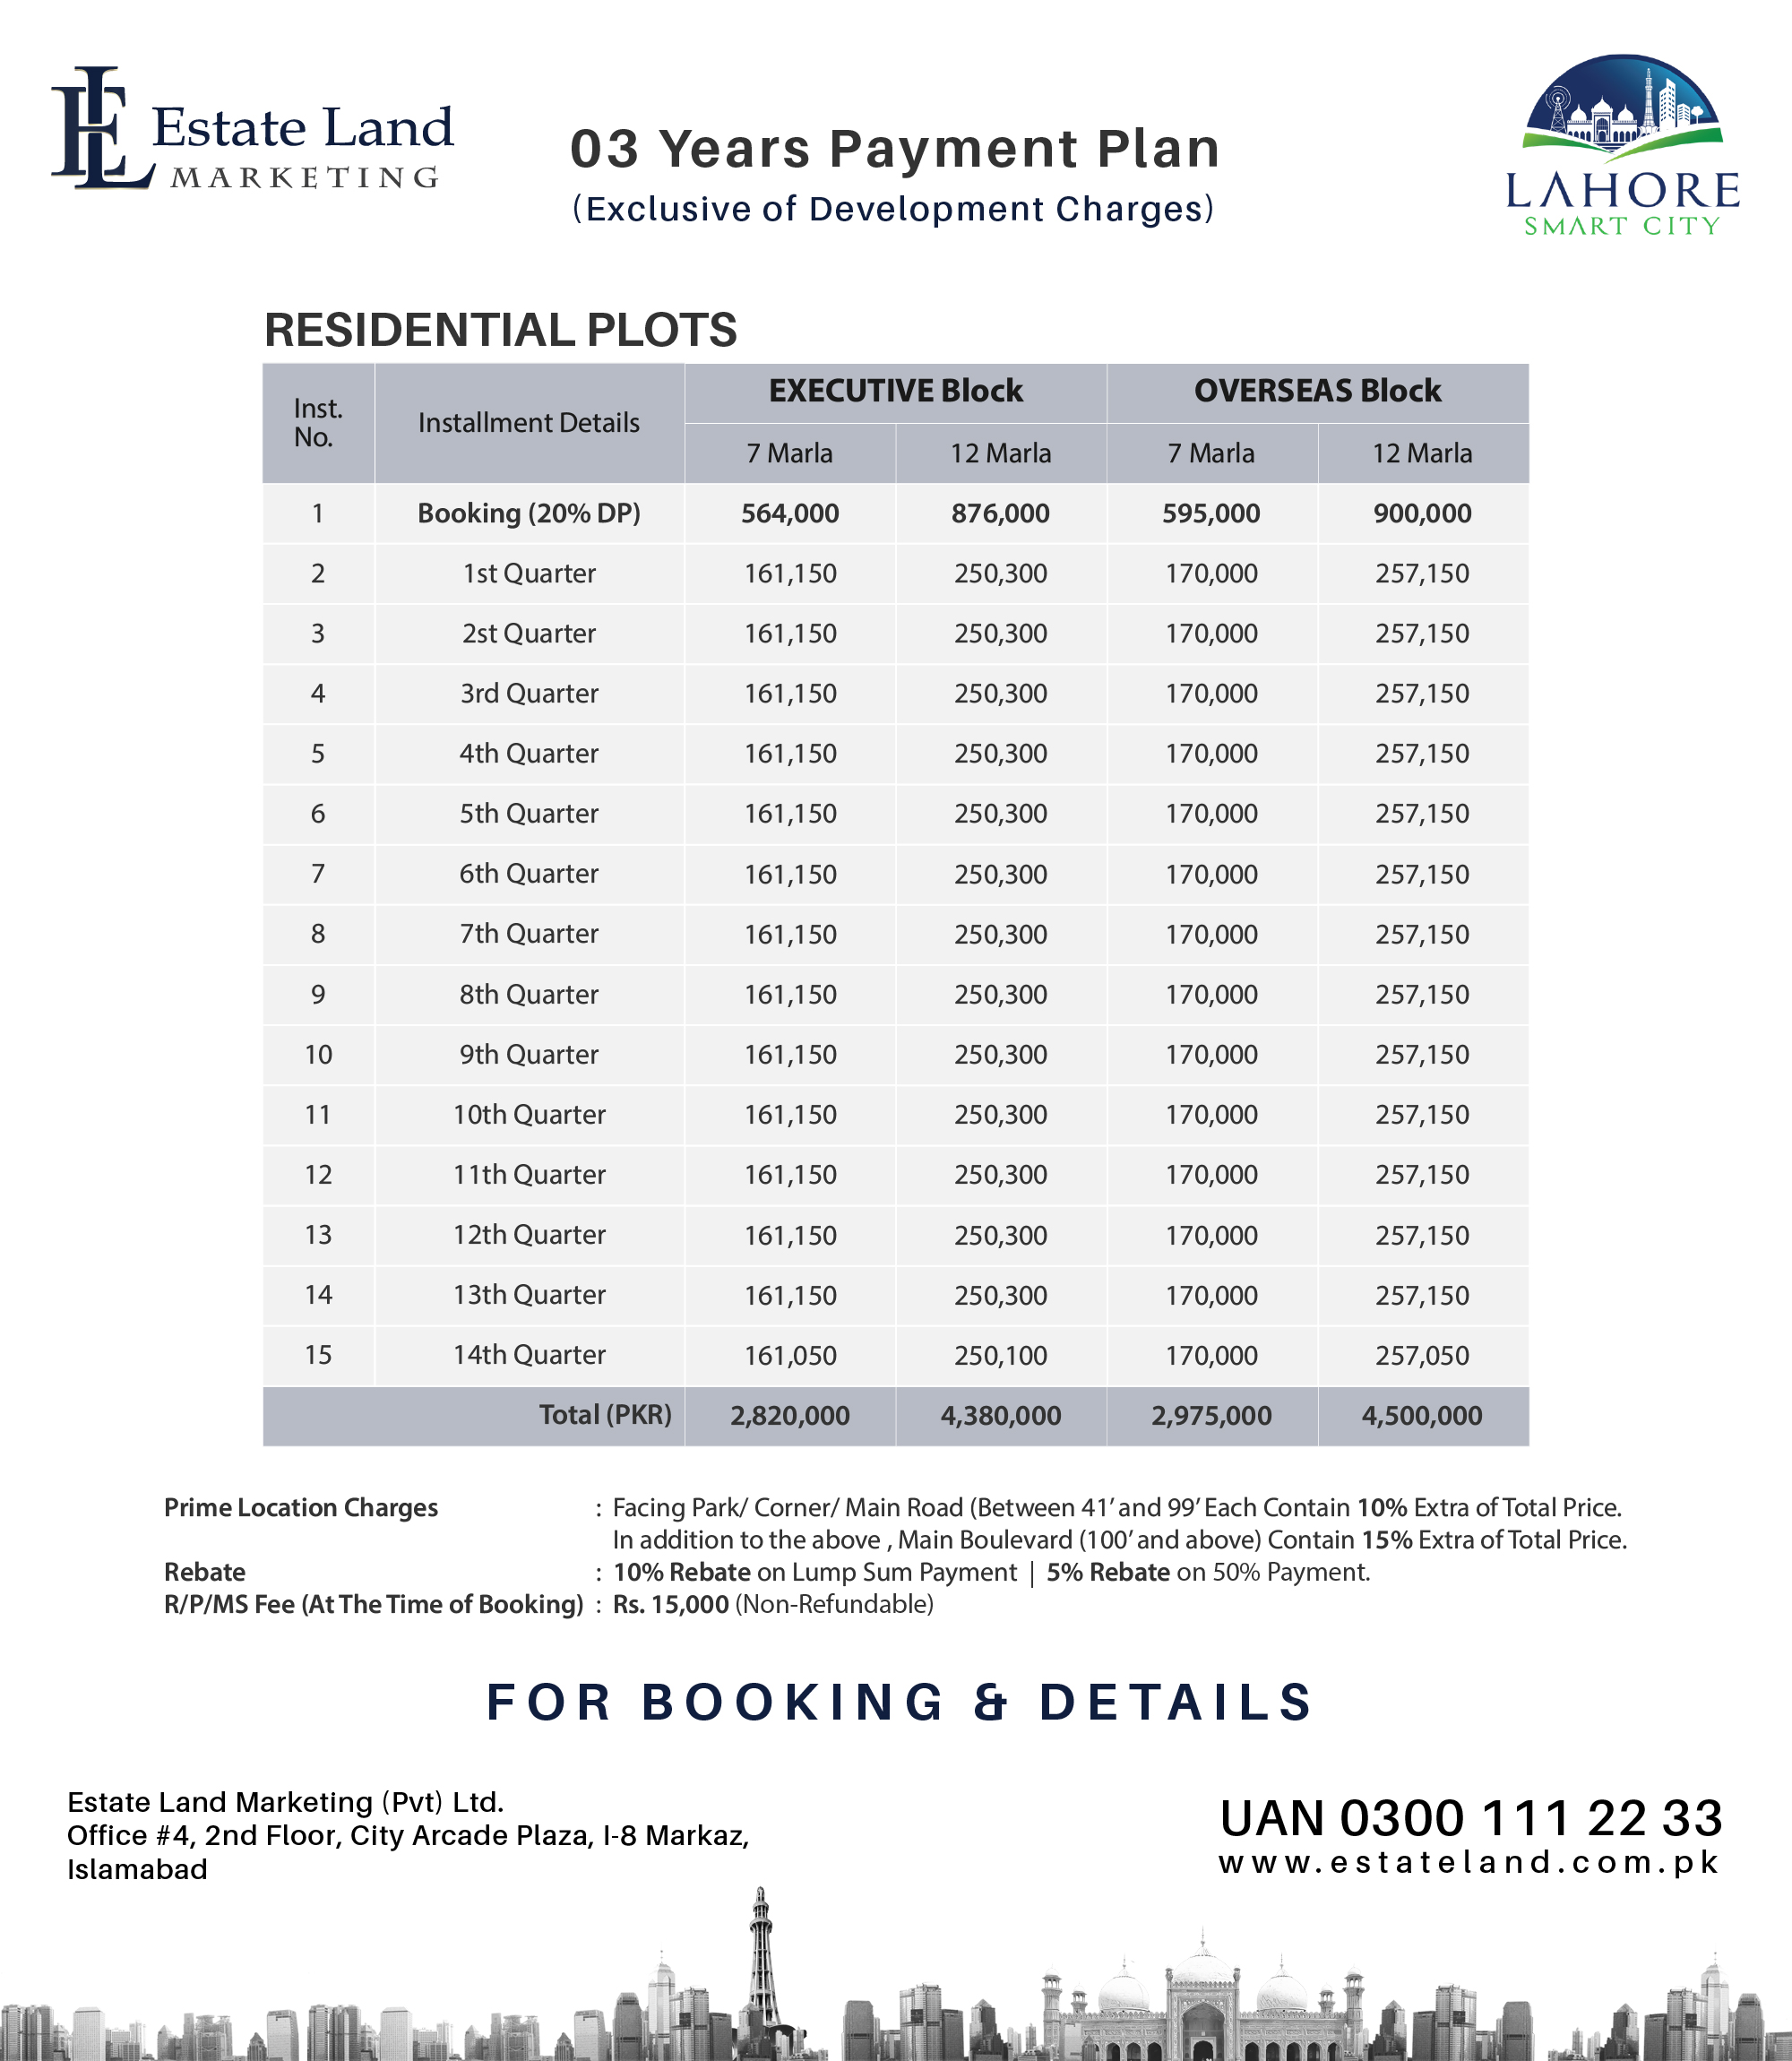 7 marla and 12 marla residential plot payment plan of Lahore smart city